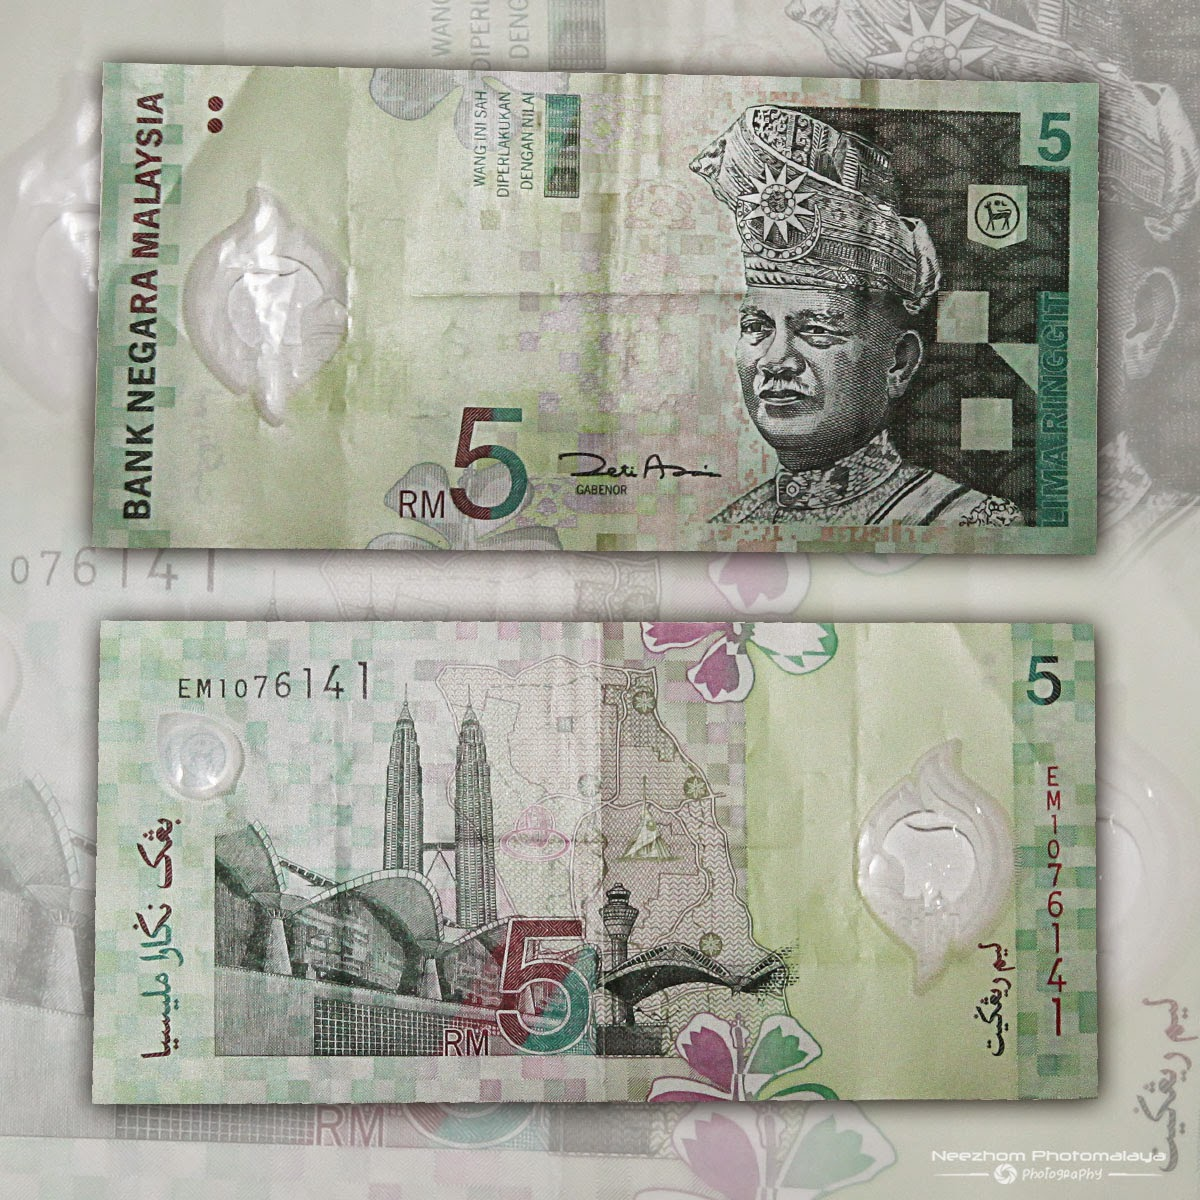 Malaysia 5 Ringgit 3rd series polymer banknote